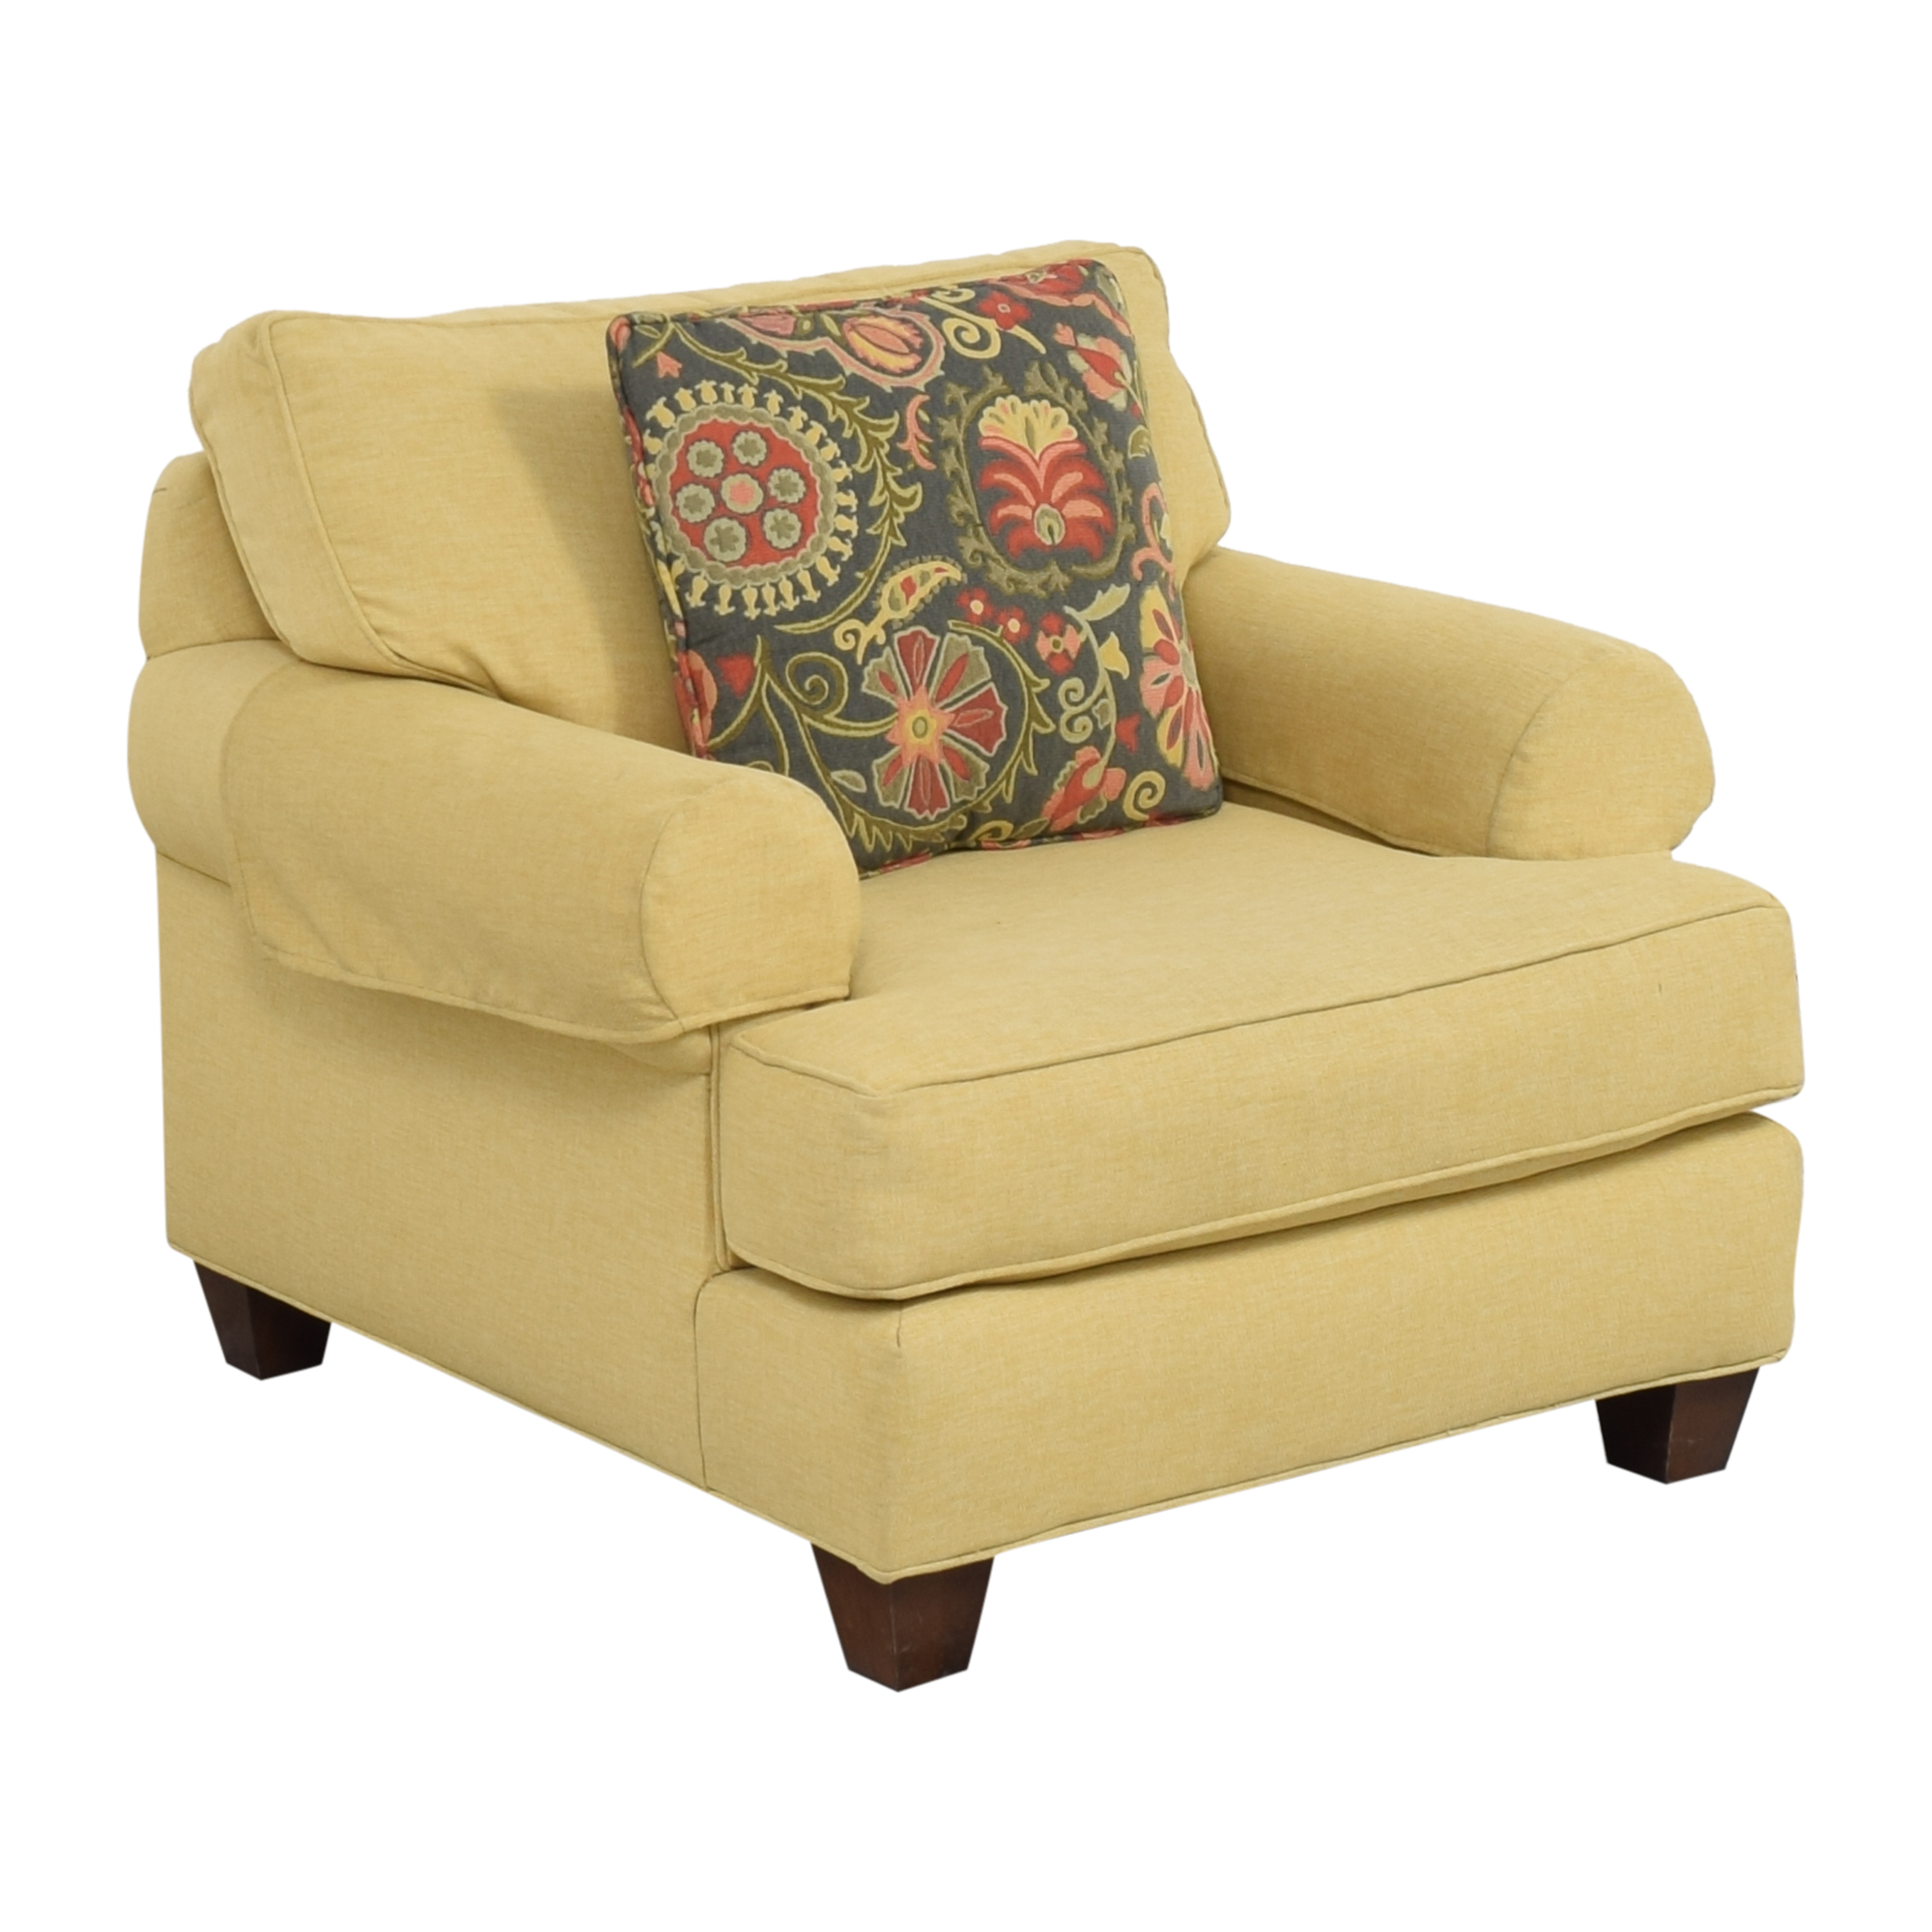 buy Craftmaster Furniture Townhouse Armchair Craftmaster Furniture Chairs